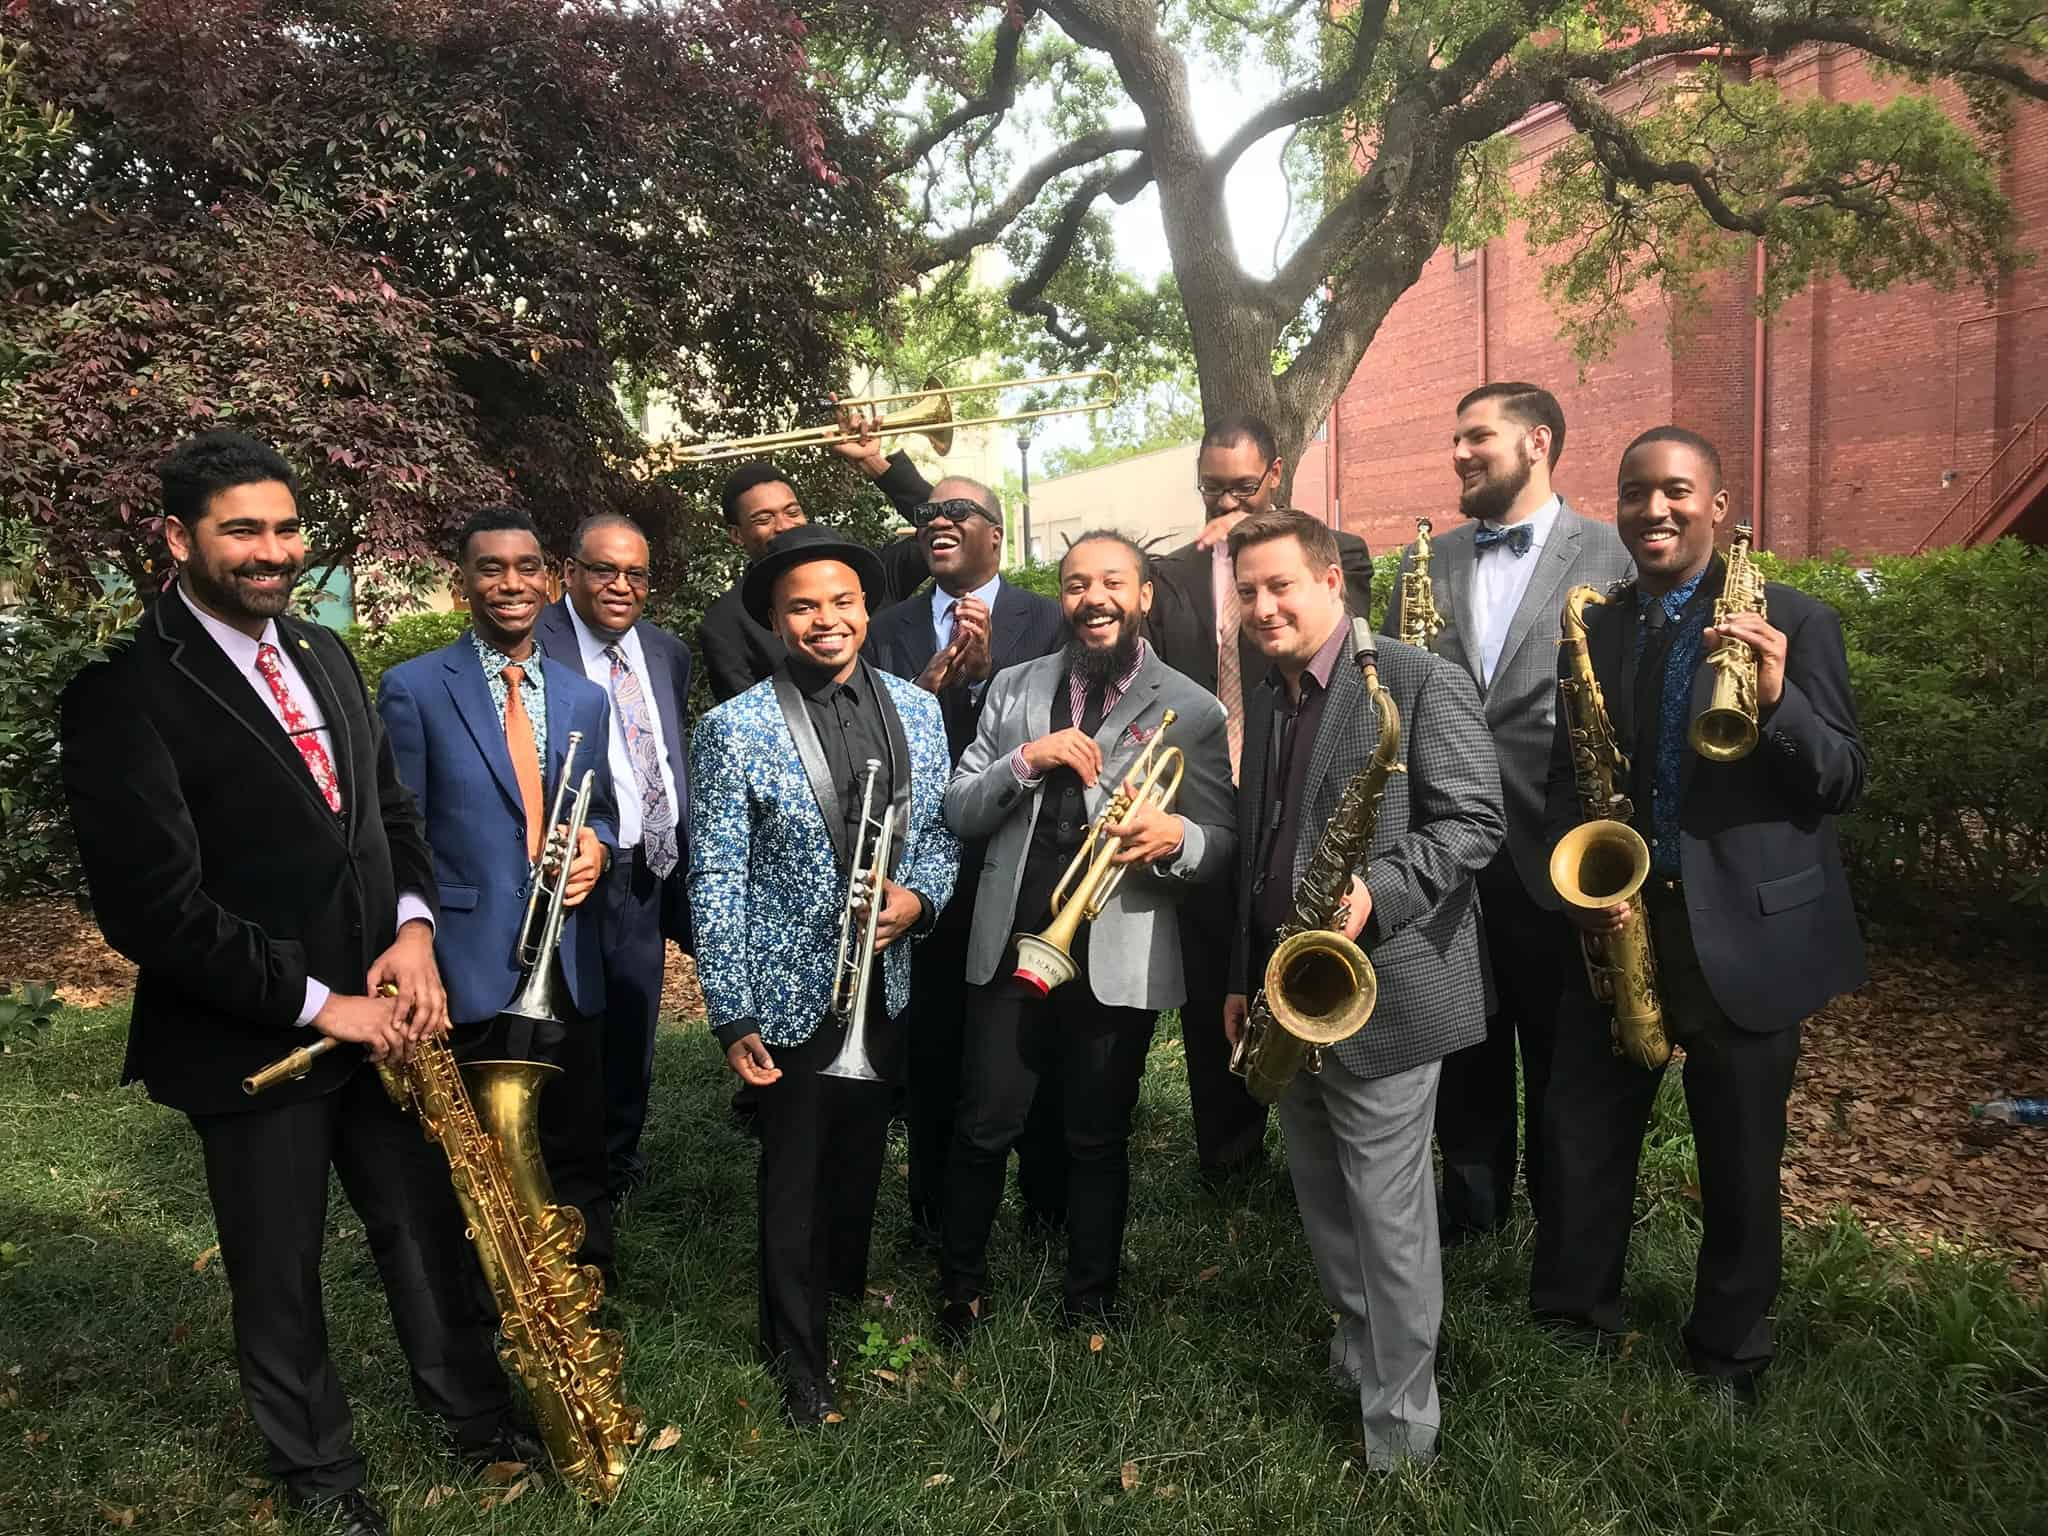 Marcus Roberts and the Modern Jazz Generation Band